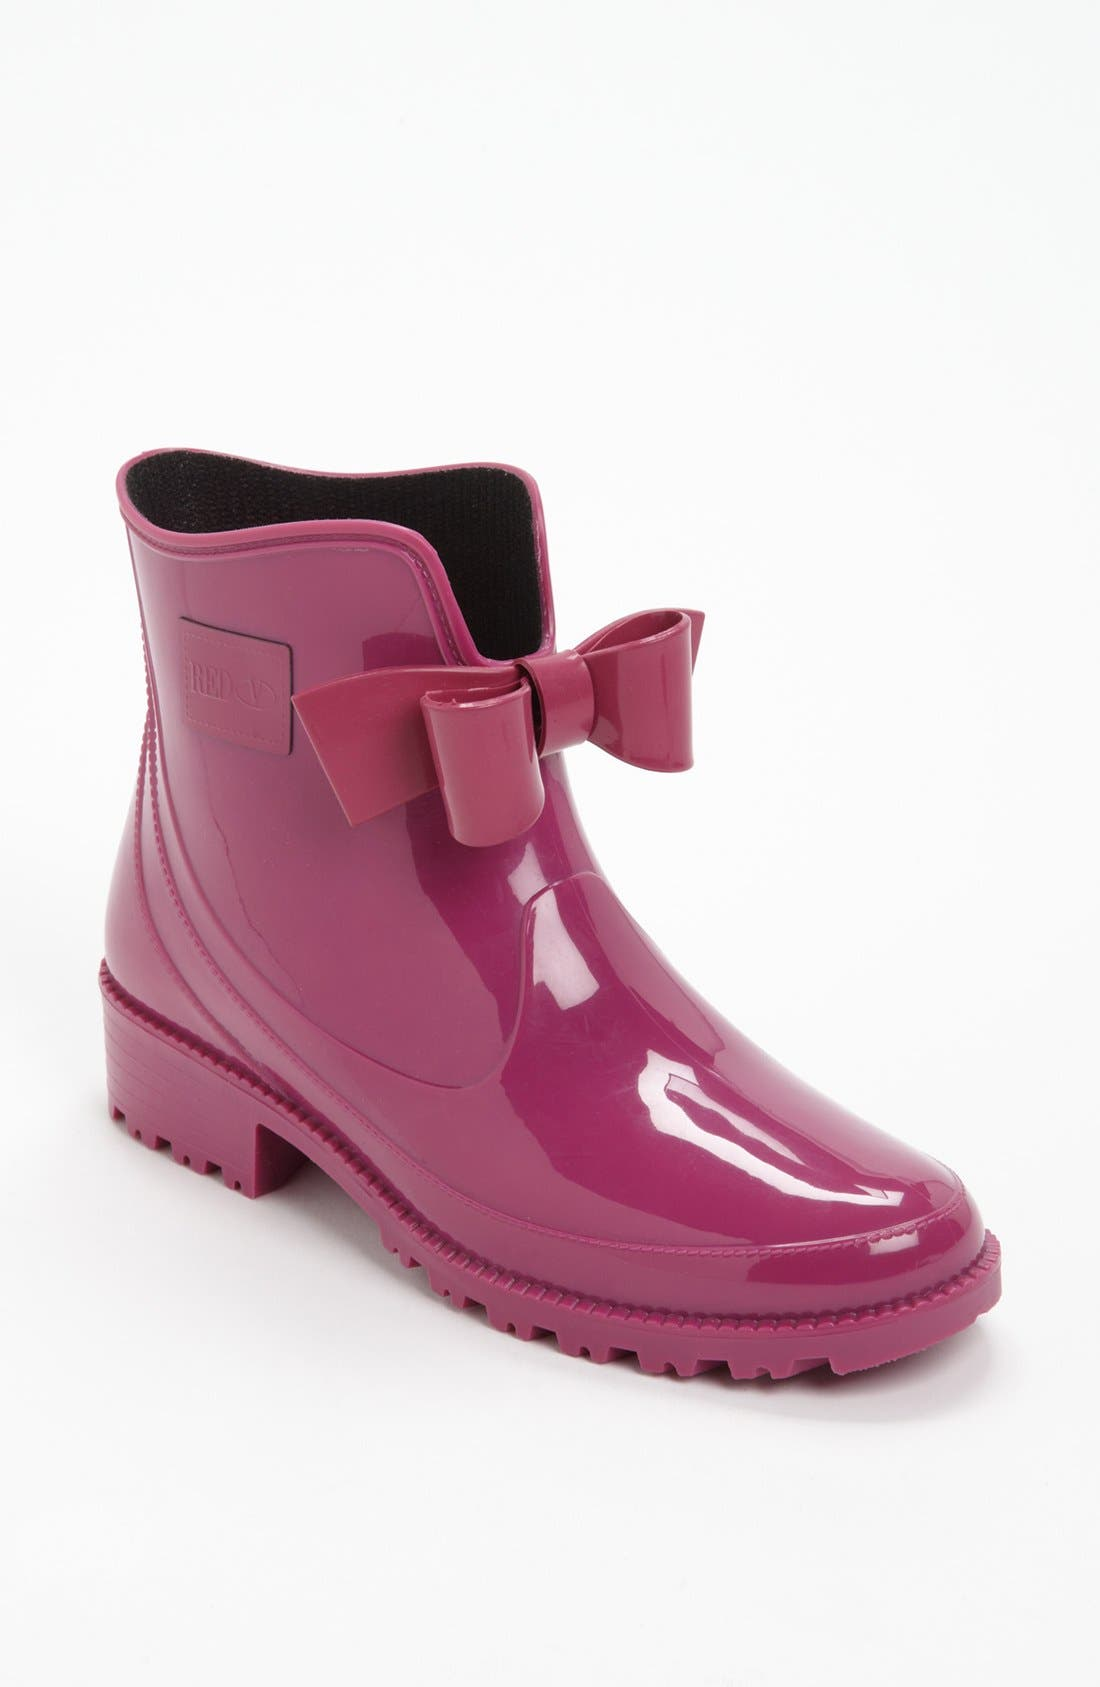 Alternate Image 1 Selected - RED Valentino 'Bow' Rain Boot (Women)